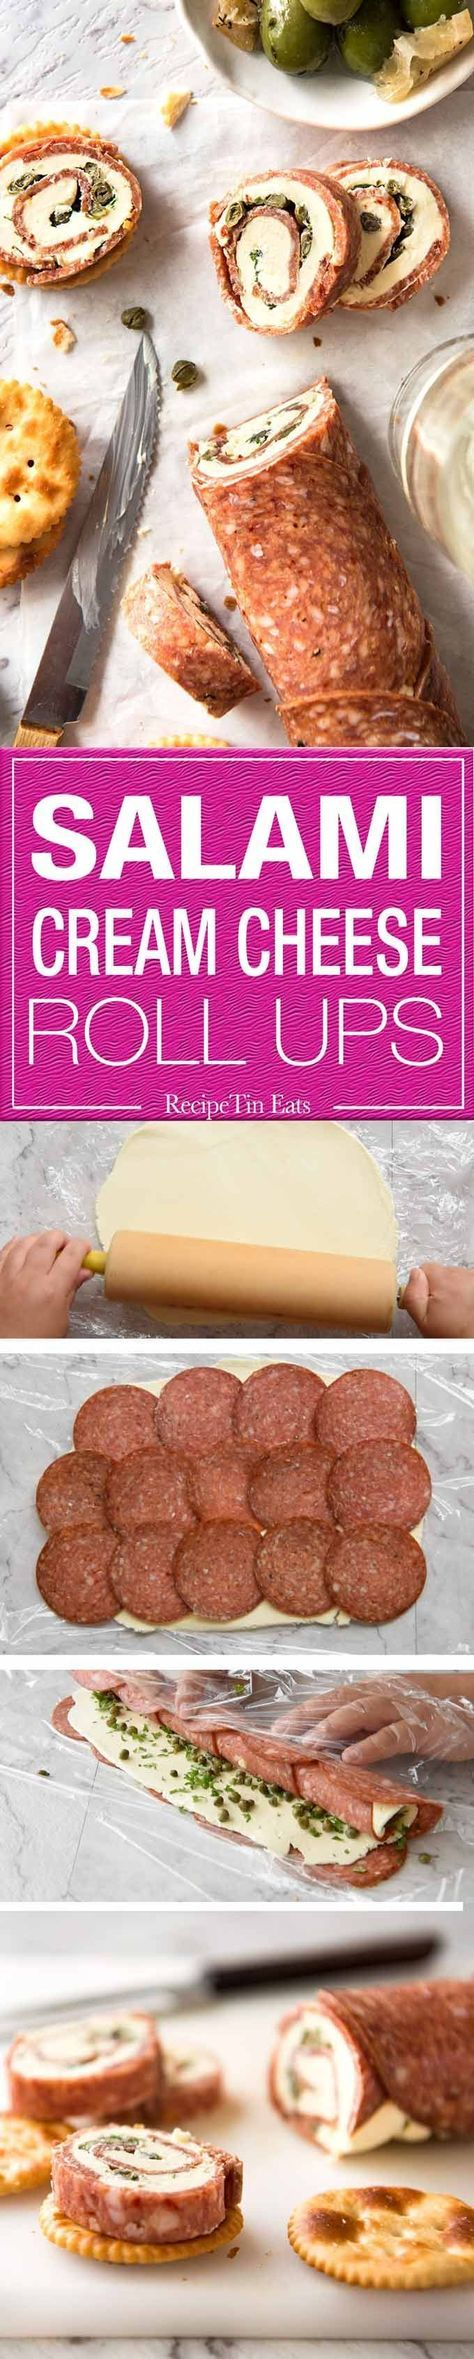 Salami Cream Cheese Roll Up - Great inexpensive party food idea! http://www.recipetineats.com